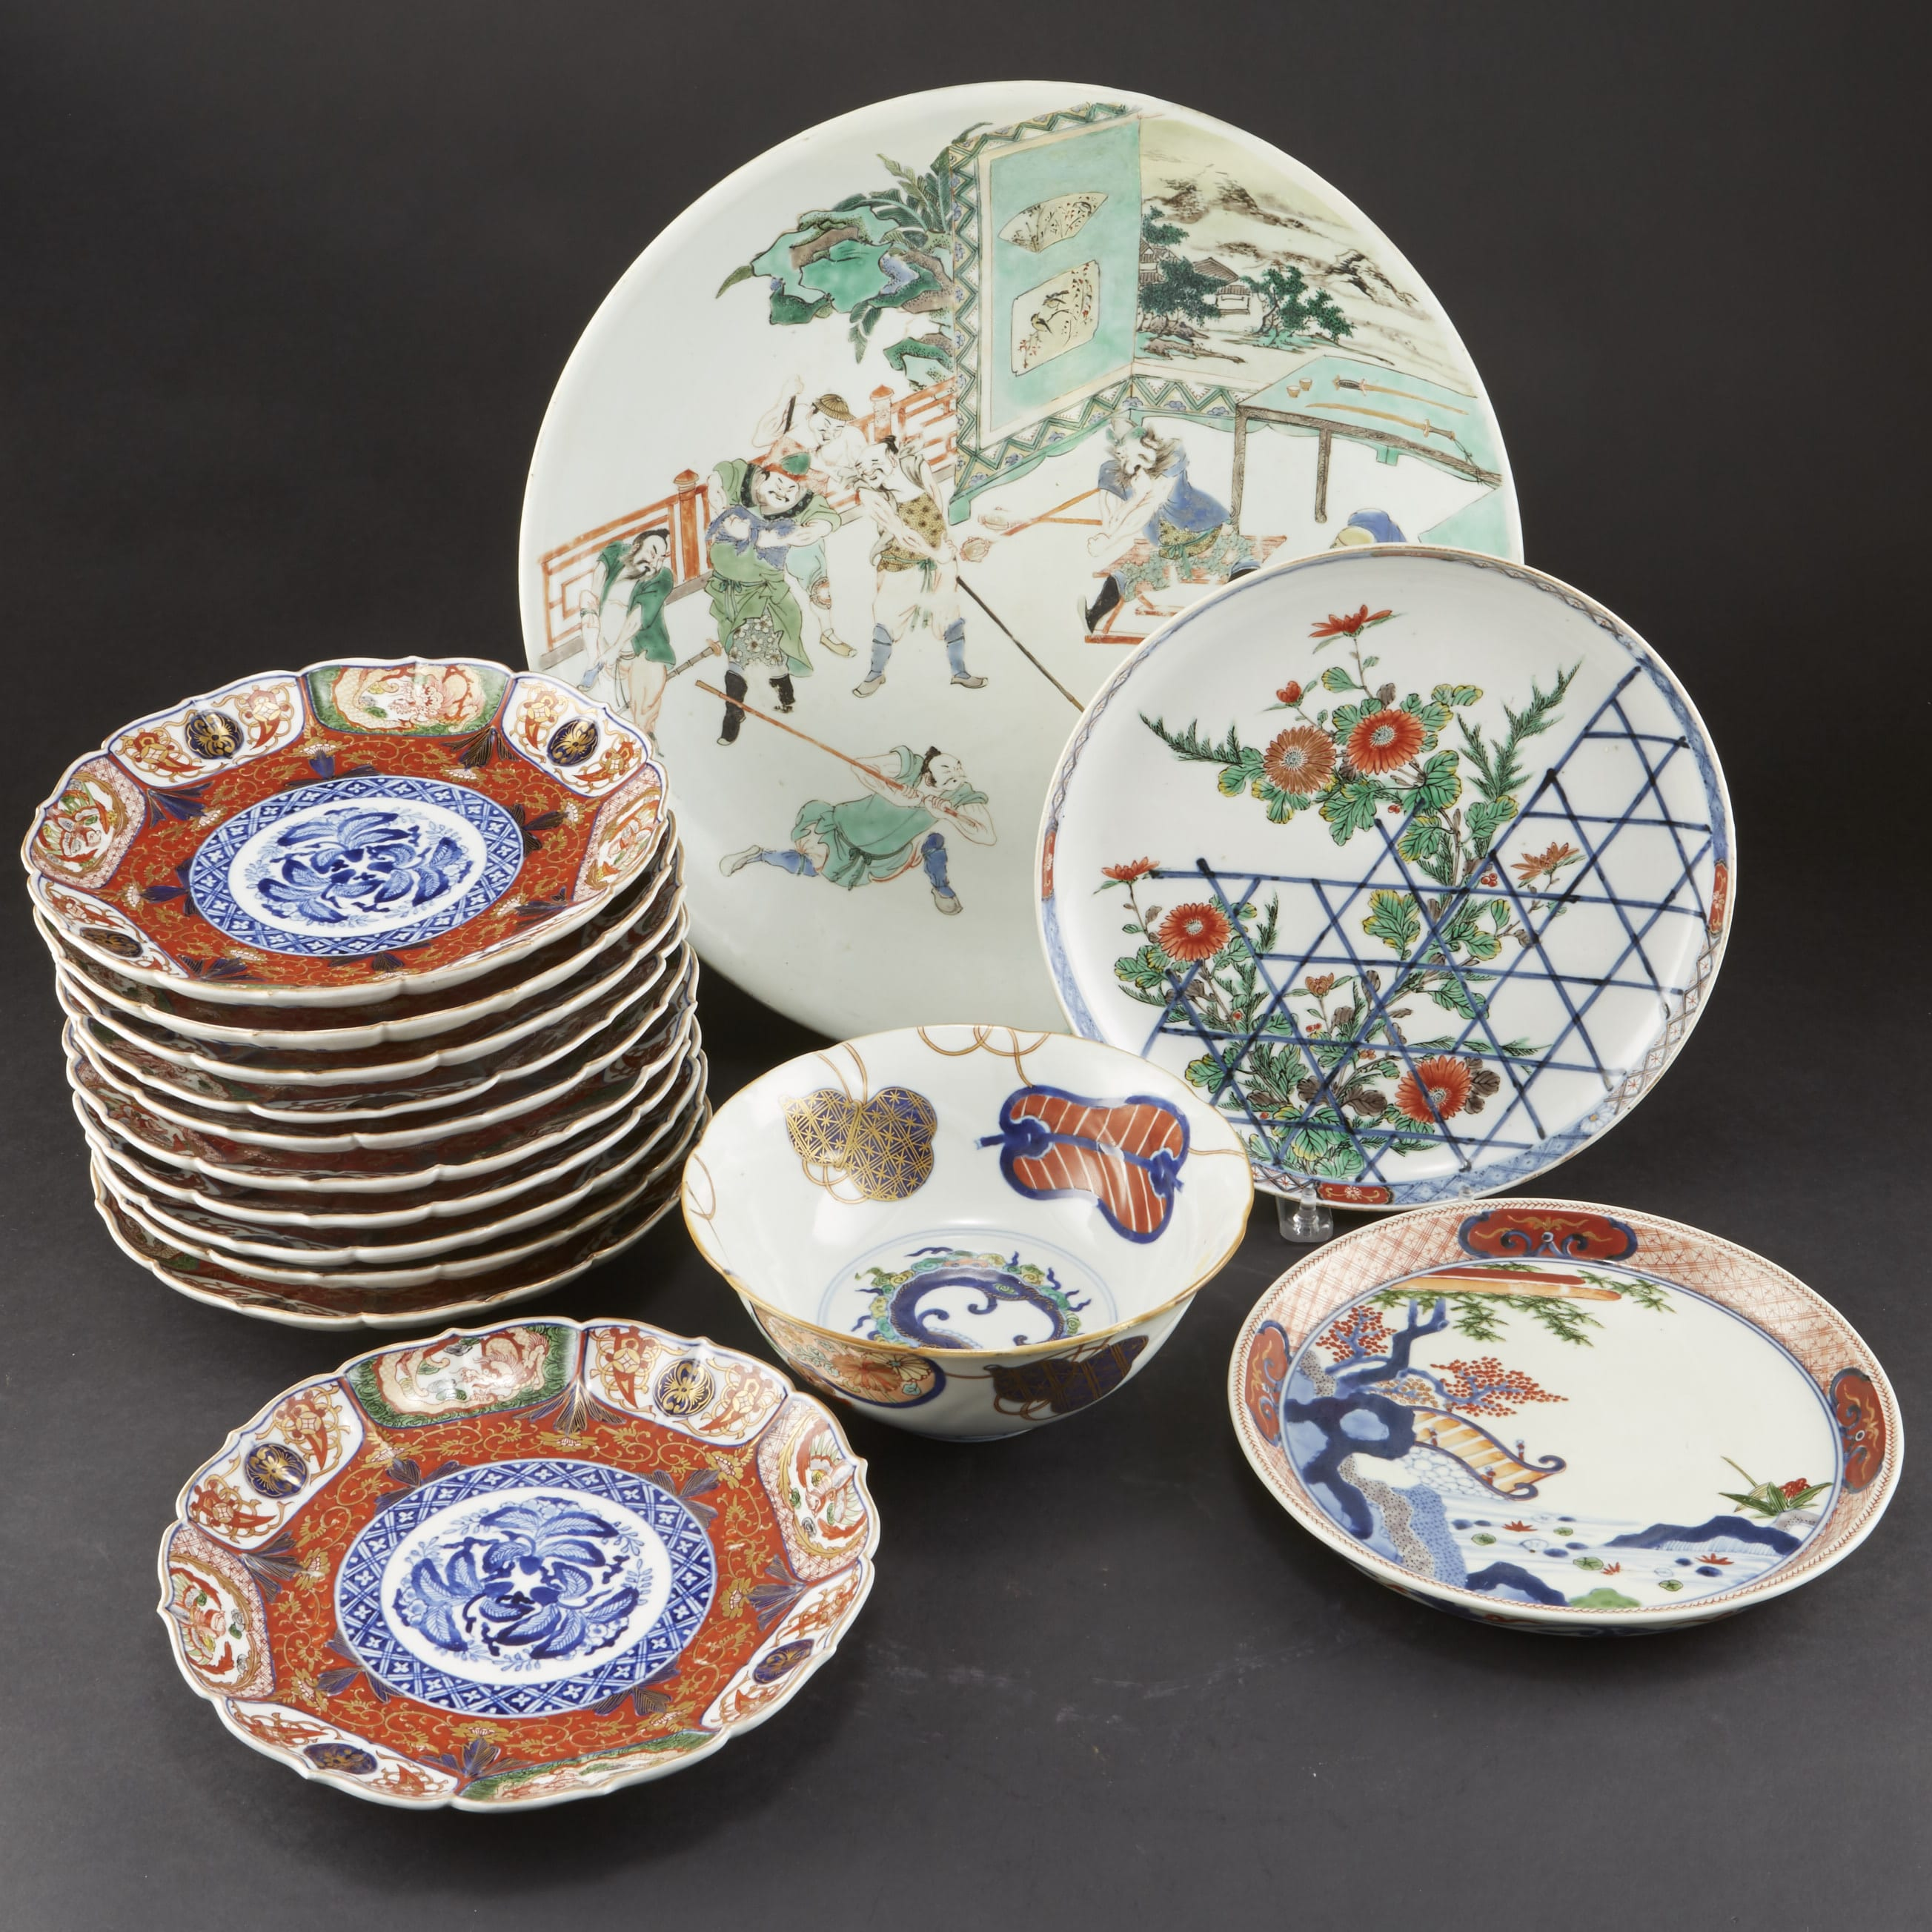 Lot 084: 16 Japanese 18th/19th Century Imari Plates and Bowls